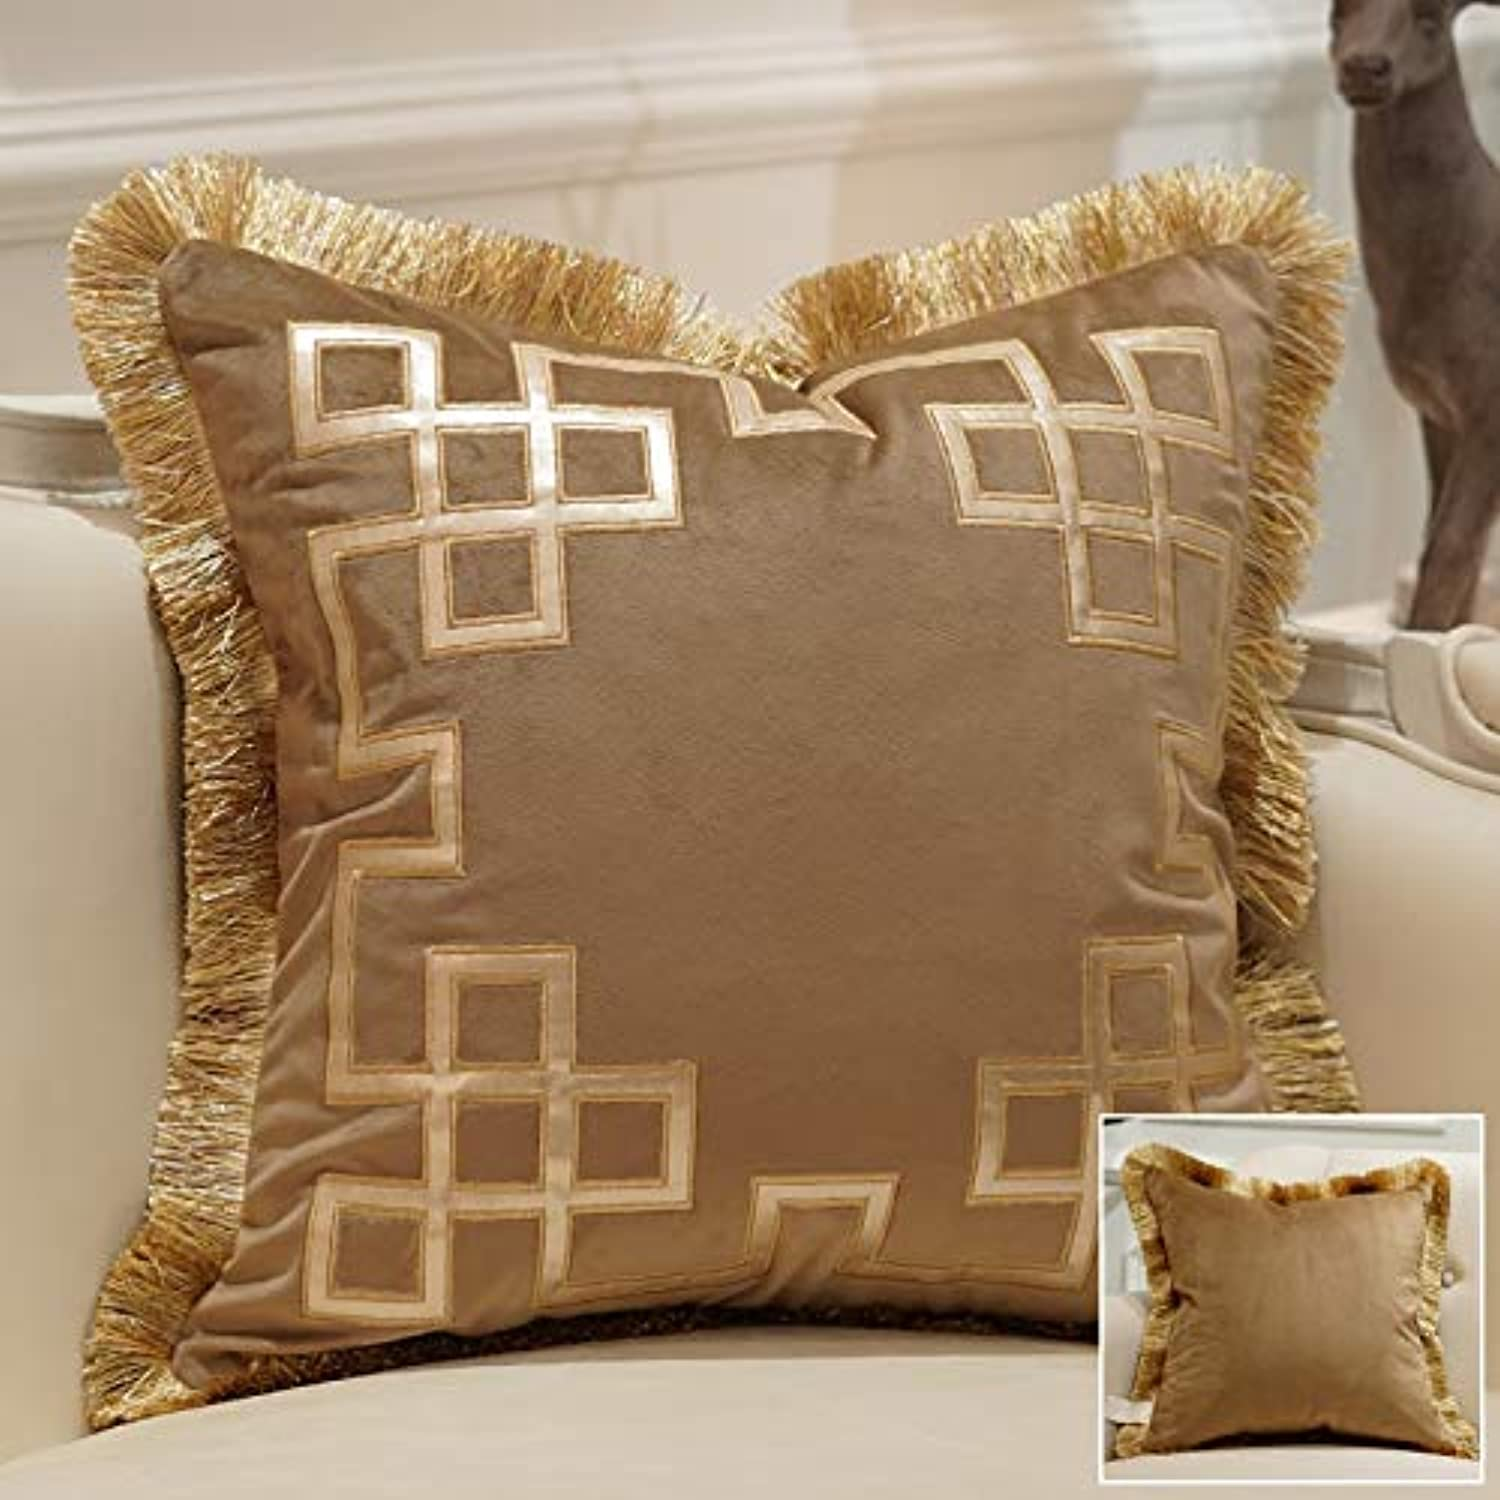 2 pcs of Avigers Embroidery Velvet Tassel Cushion Cover Luxury Pillow Cover Pillow Case Geometry Home Decorative Sofa Chair Throw Pillow